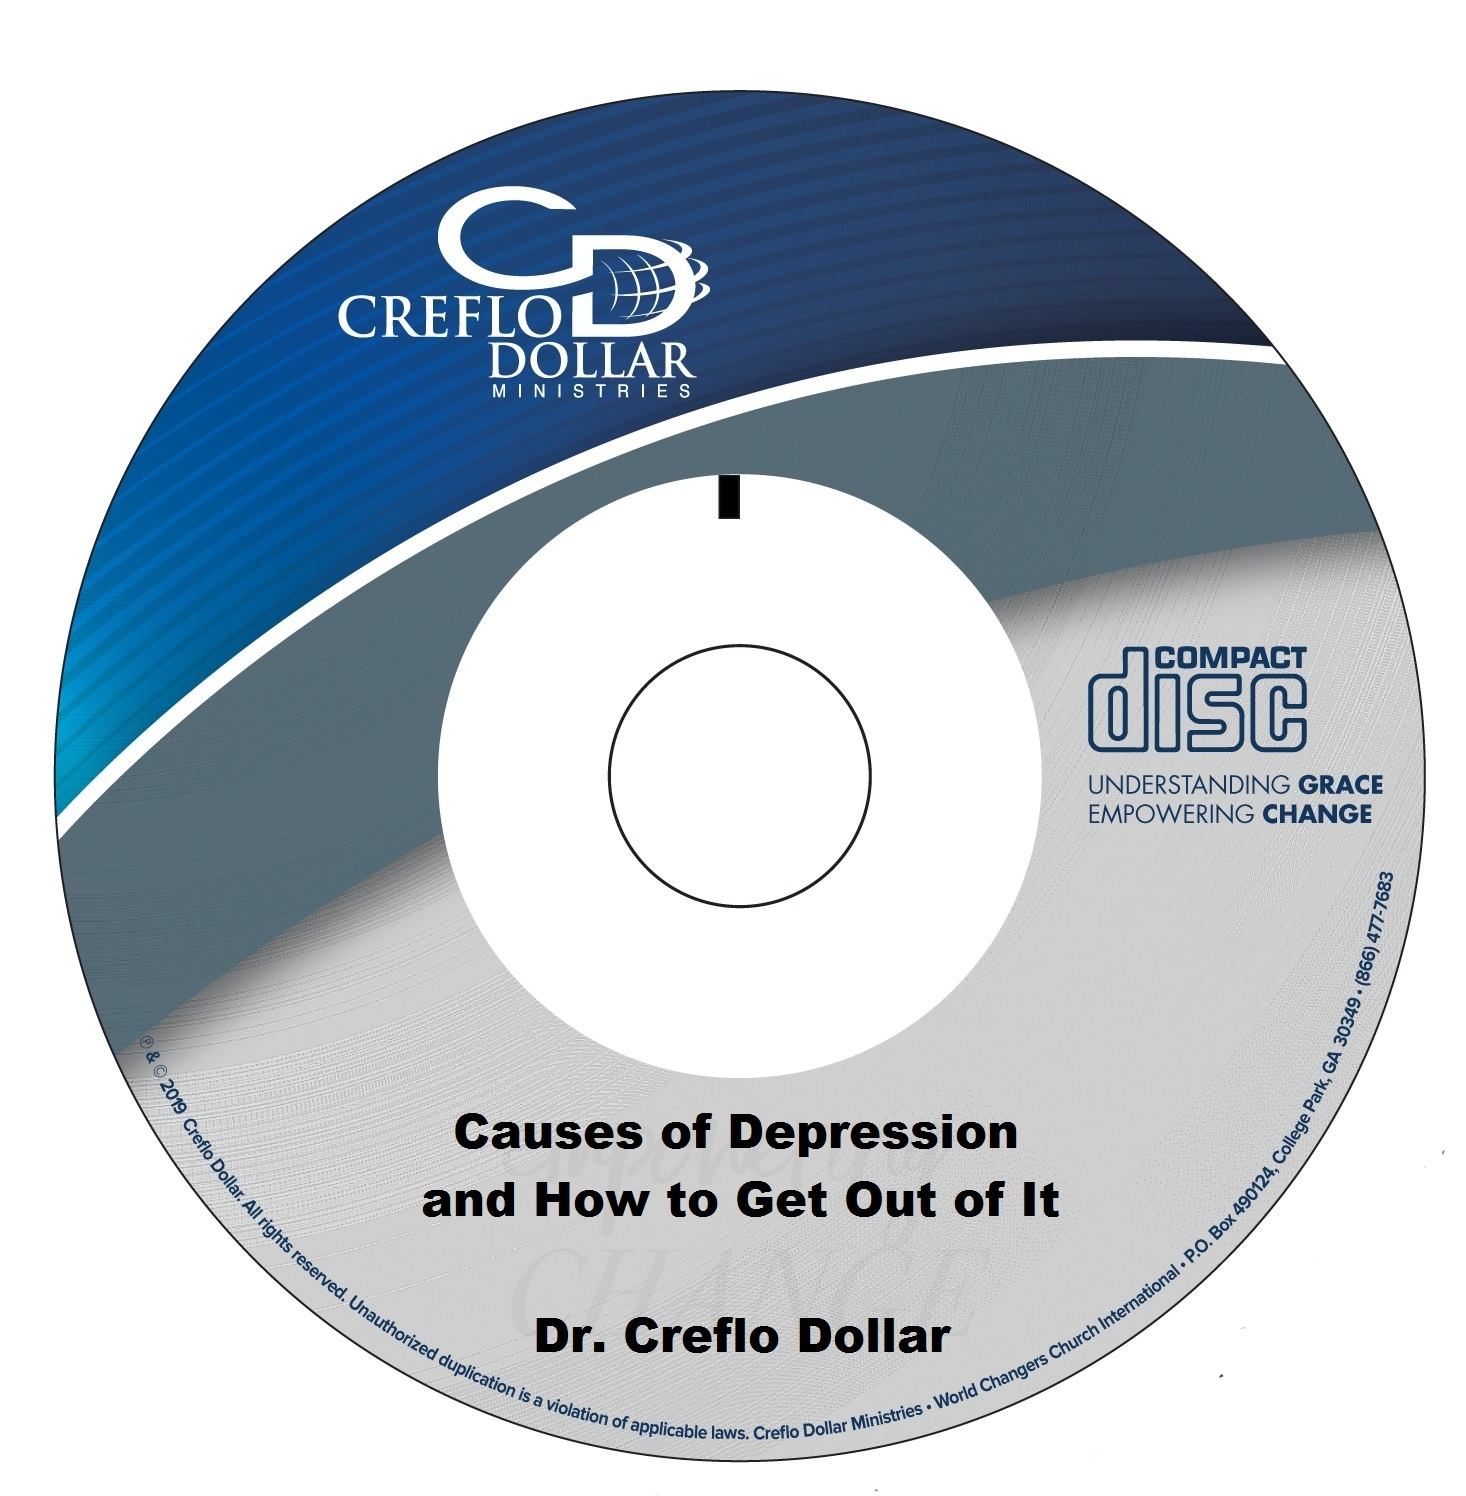 Causes of Depression and How to Get Out of It - CD Single